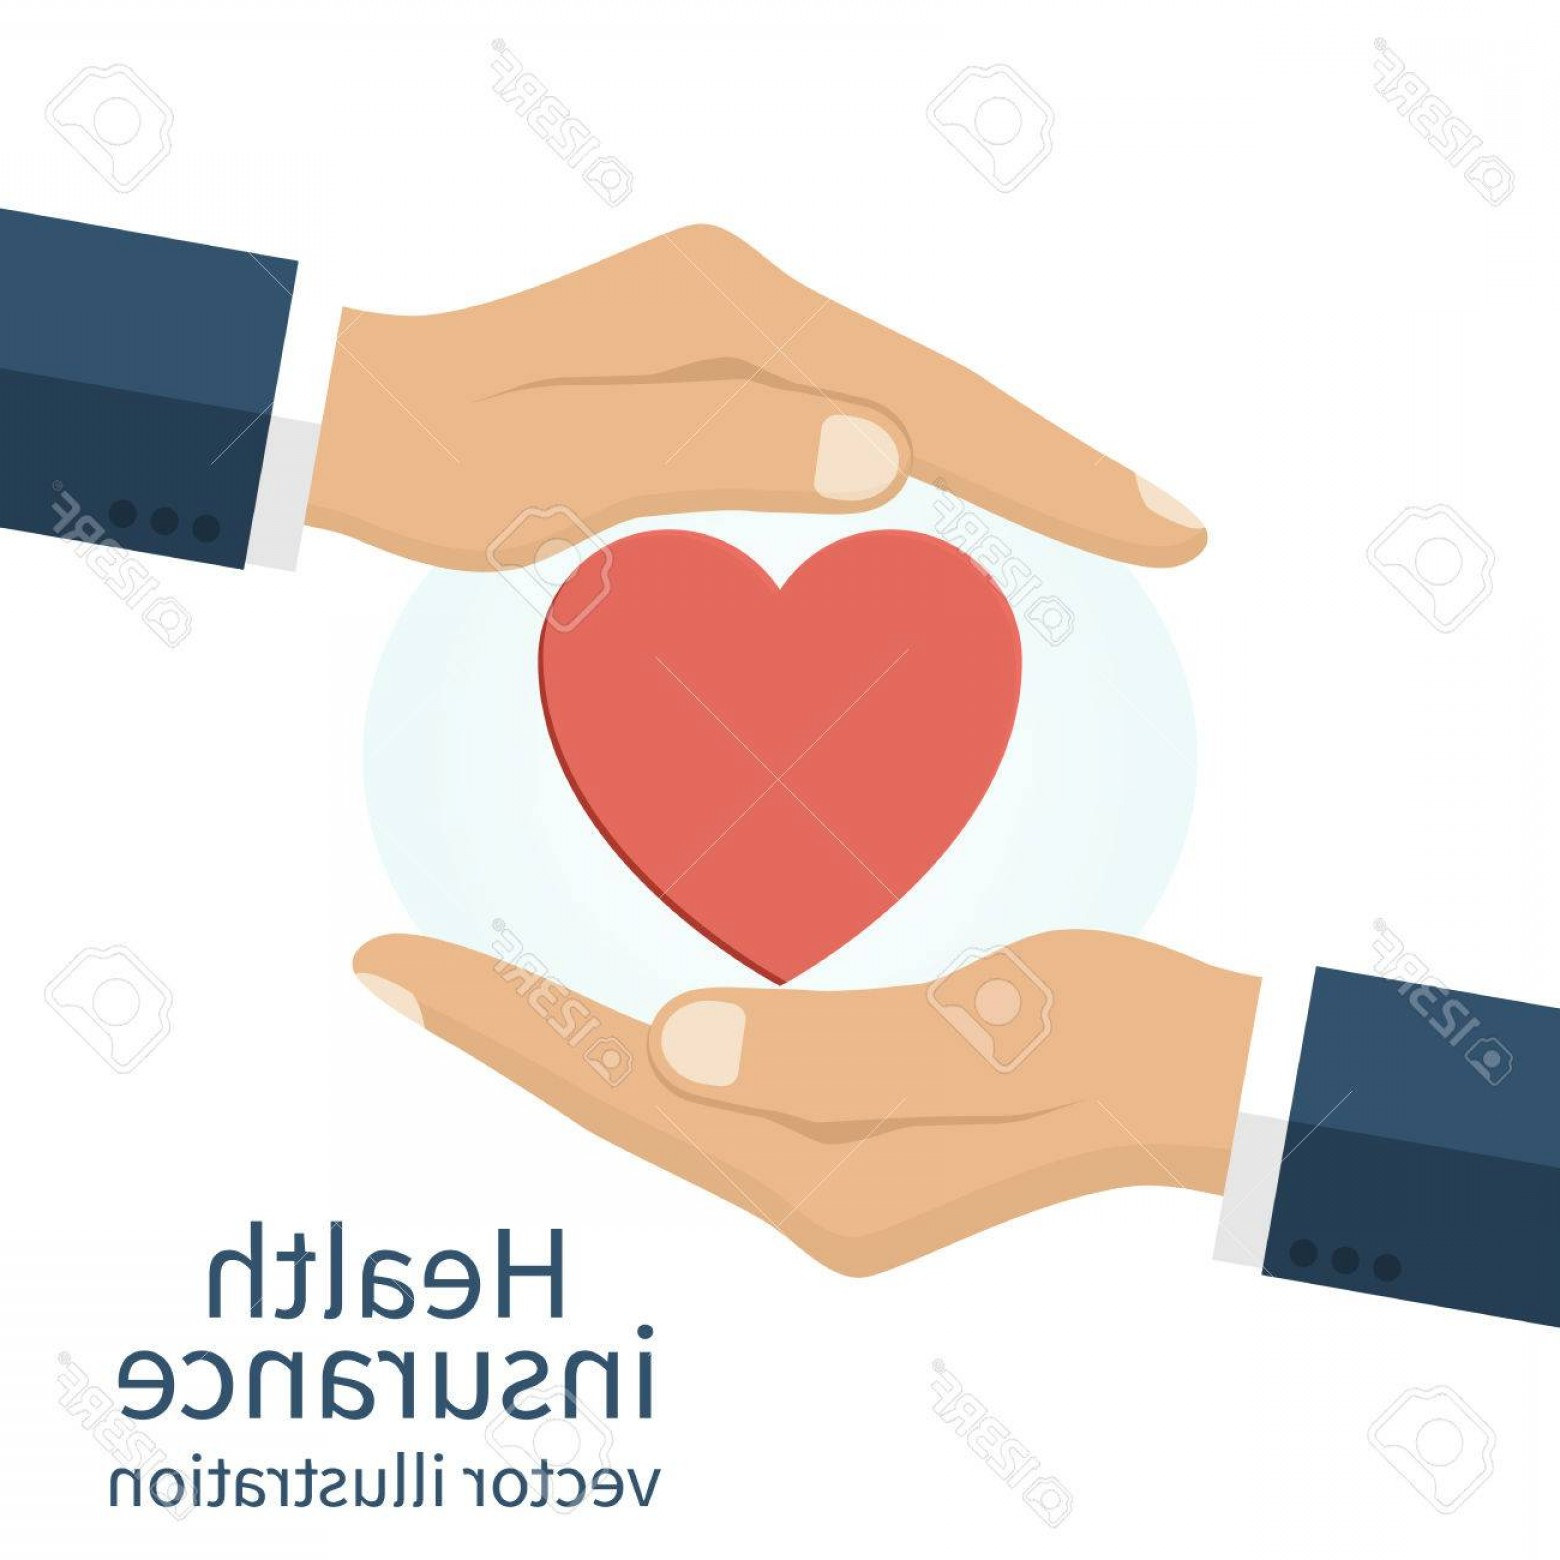 Vector Health Insurance: Photostock Vector Health Insurance Concept Protection Health Care Medical Man Hands Protect The Heart Health Symbol He